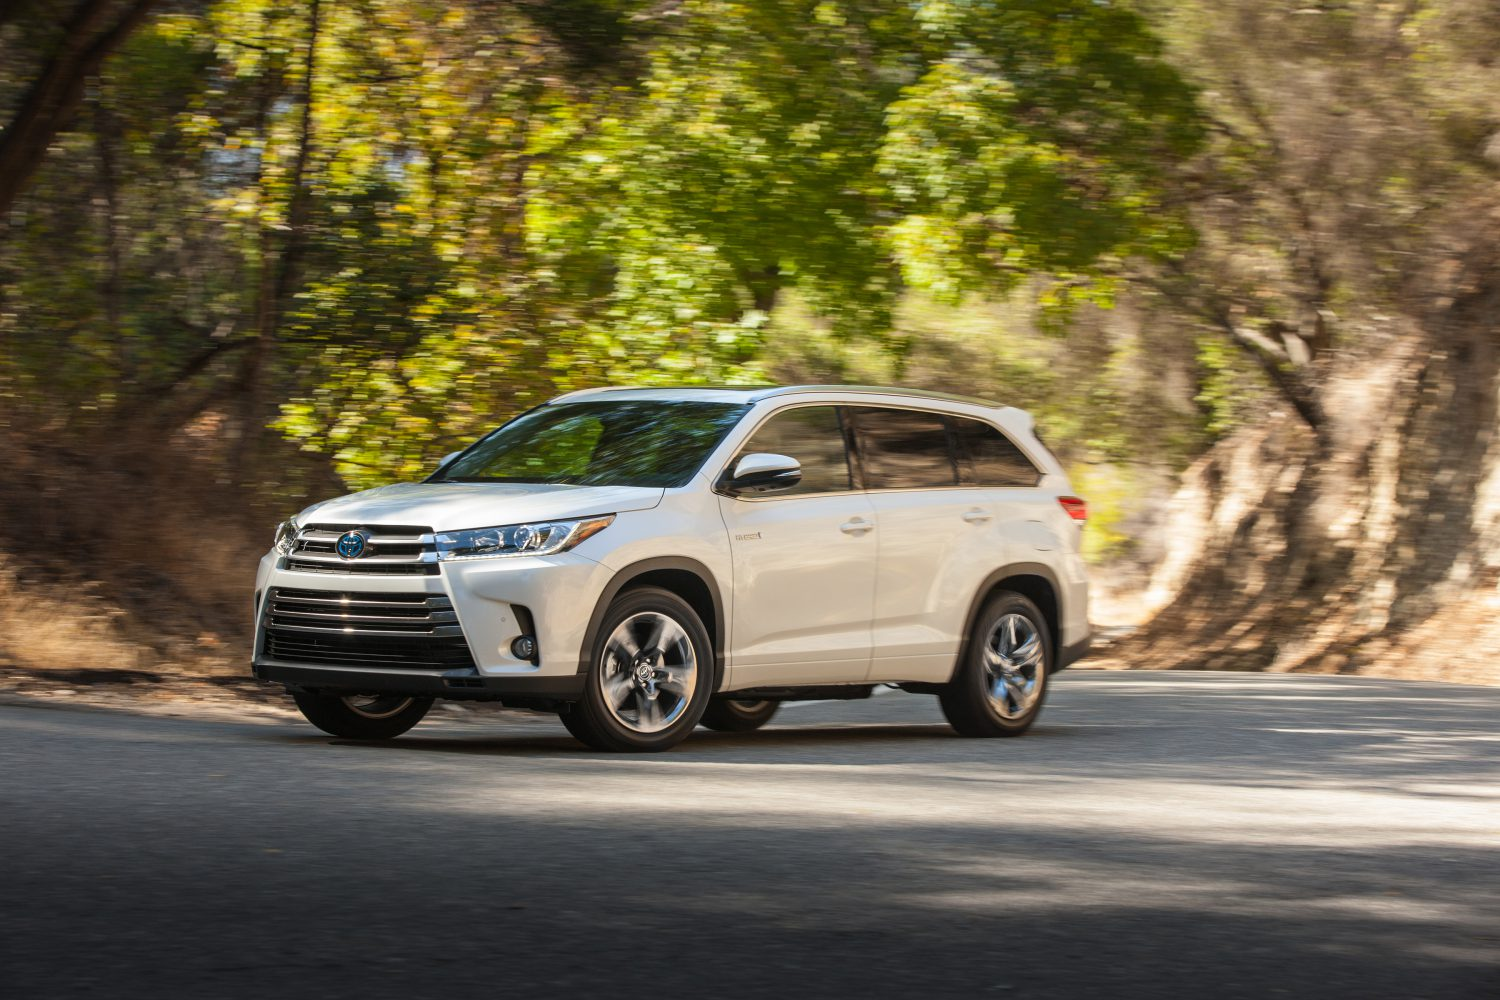 2017 Toyota Highlander Towing Capacity >> The Year Of More For The 2017 Highlander With More Power